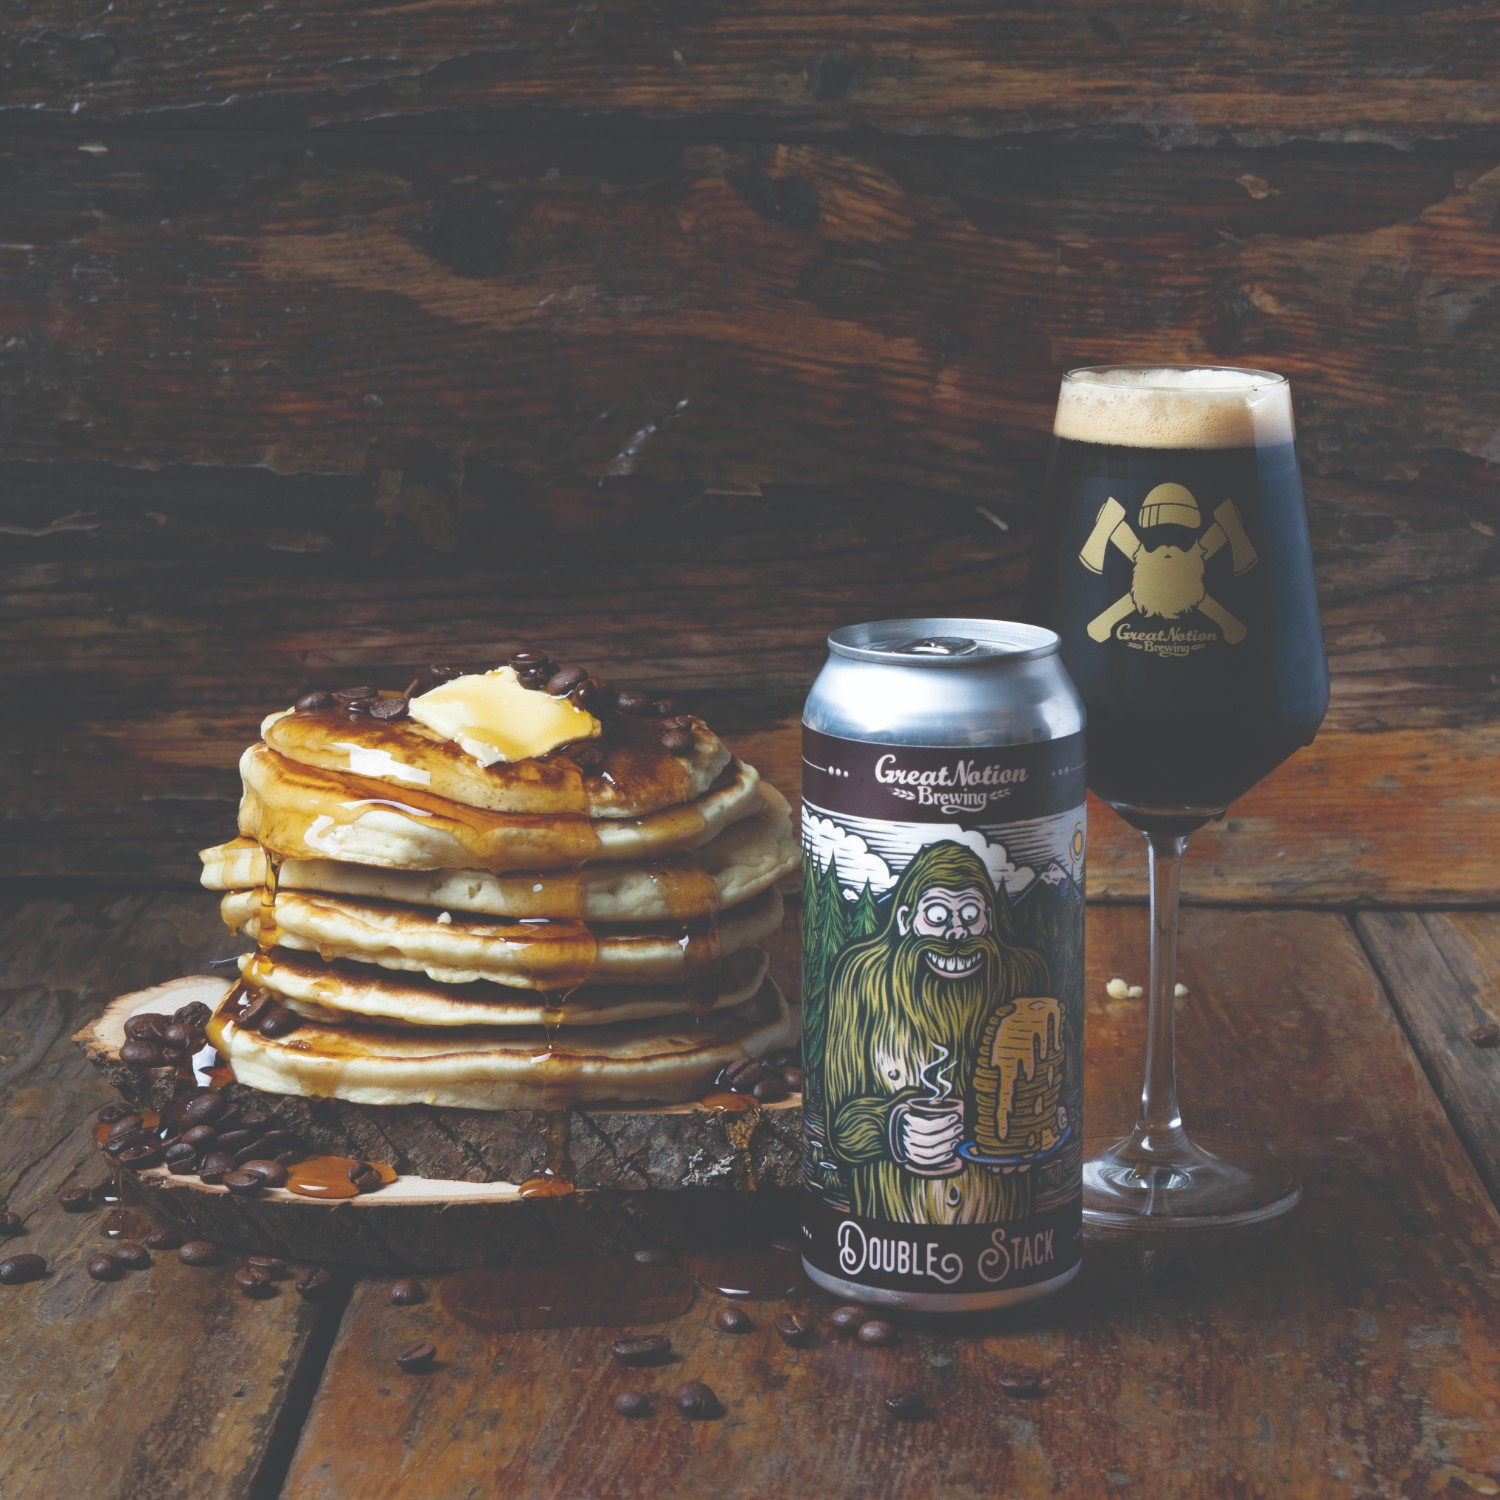 Great Notion's Double Stack imperial breakfast stout